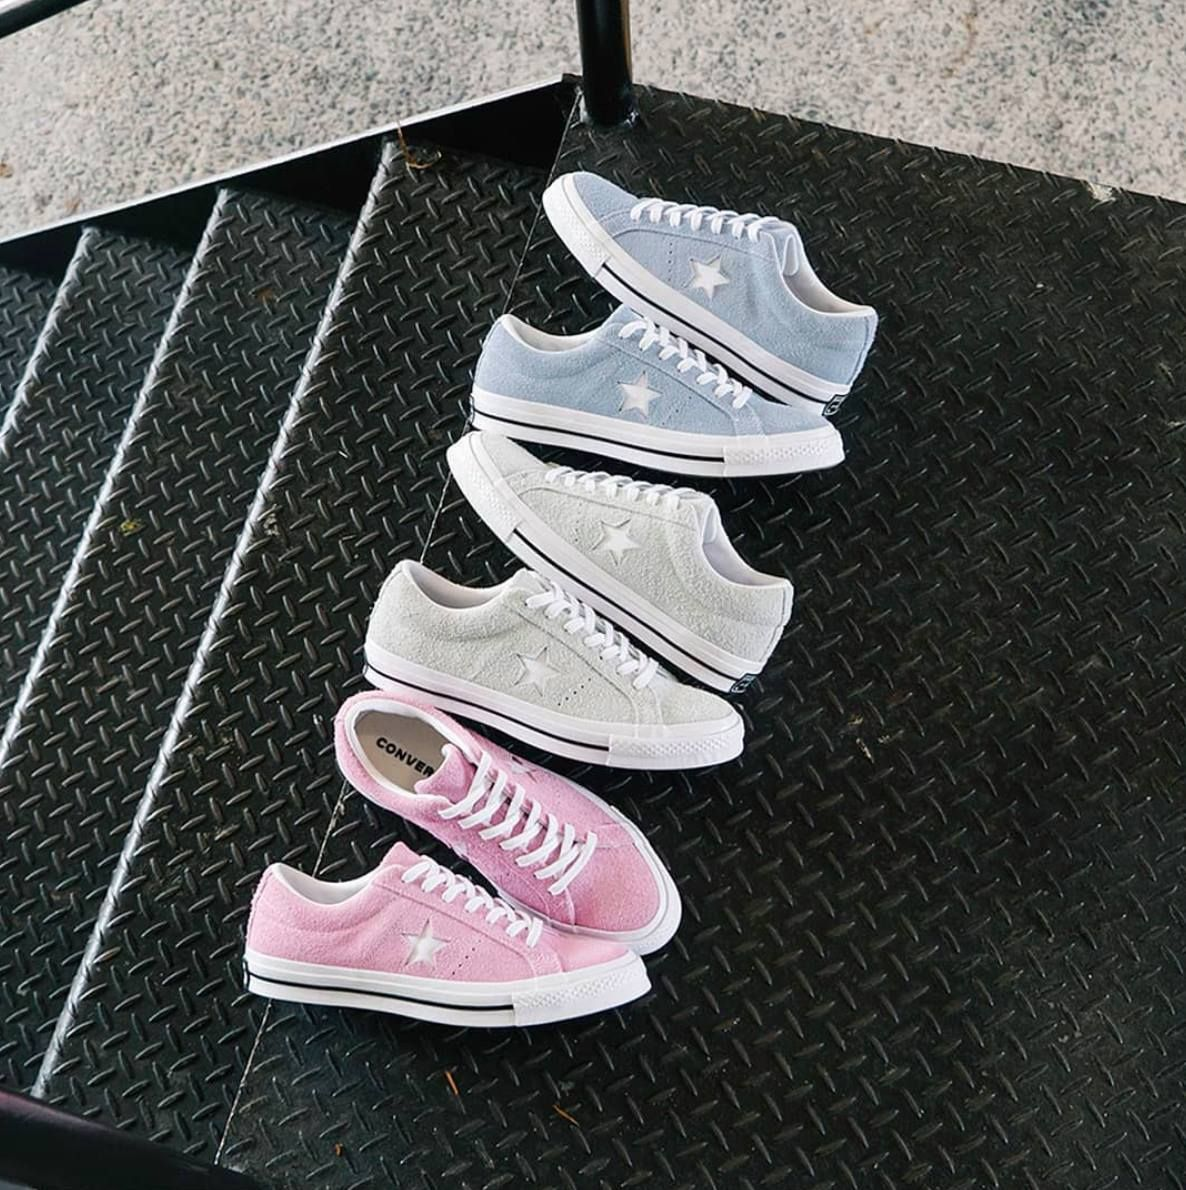 Sneakers women Converse Pastel One Star   Aesthetic shoes